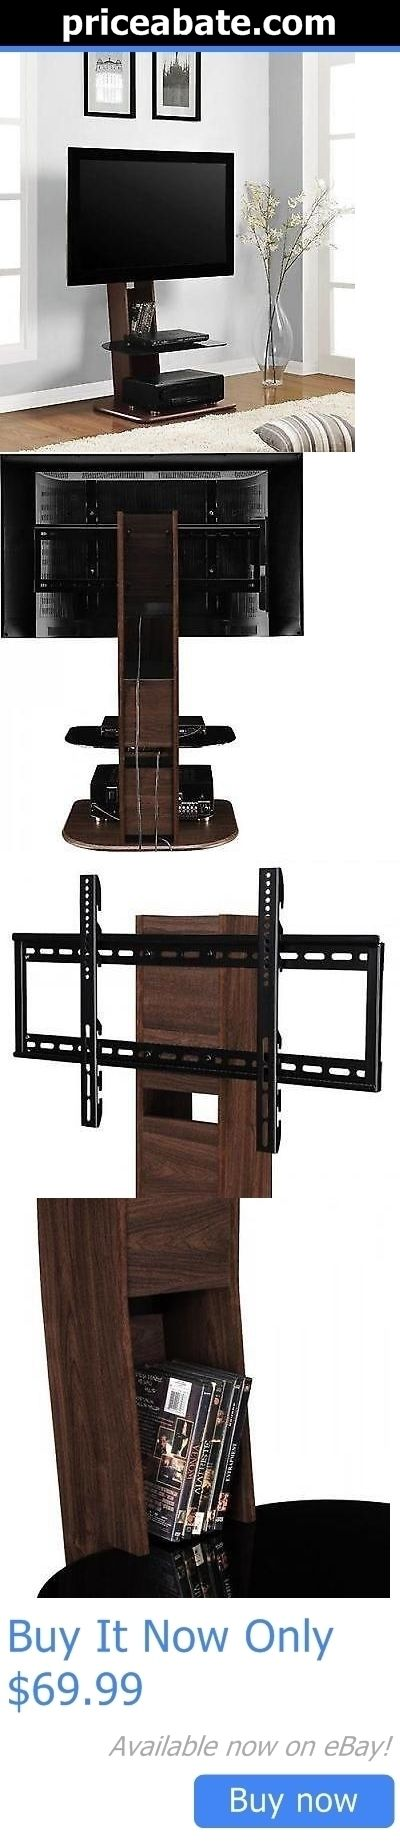 Entertainment Units TV Stands: Elegant Tv Mount Stand Media Entertainment Console Center Home Theater Furniture BUY IT NOW ONLY: $69.99 #priceabateEntertainmentUnitsTVStands OR #priceabate